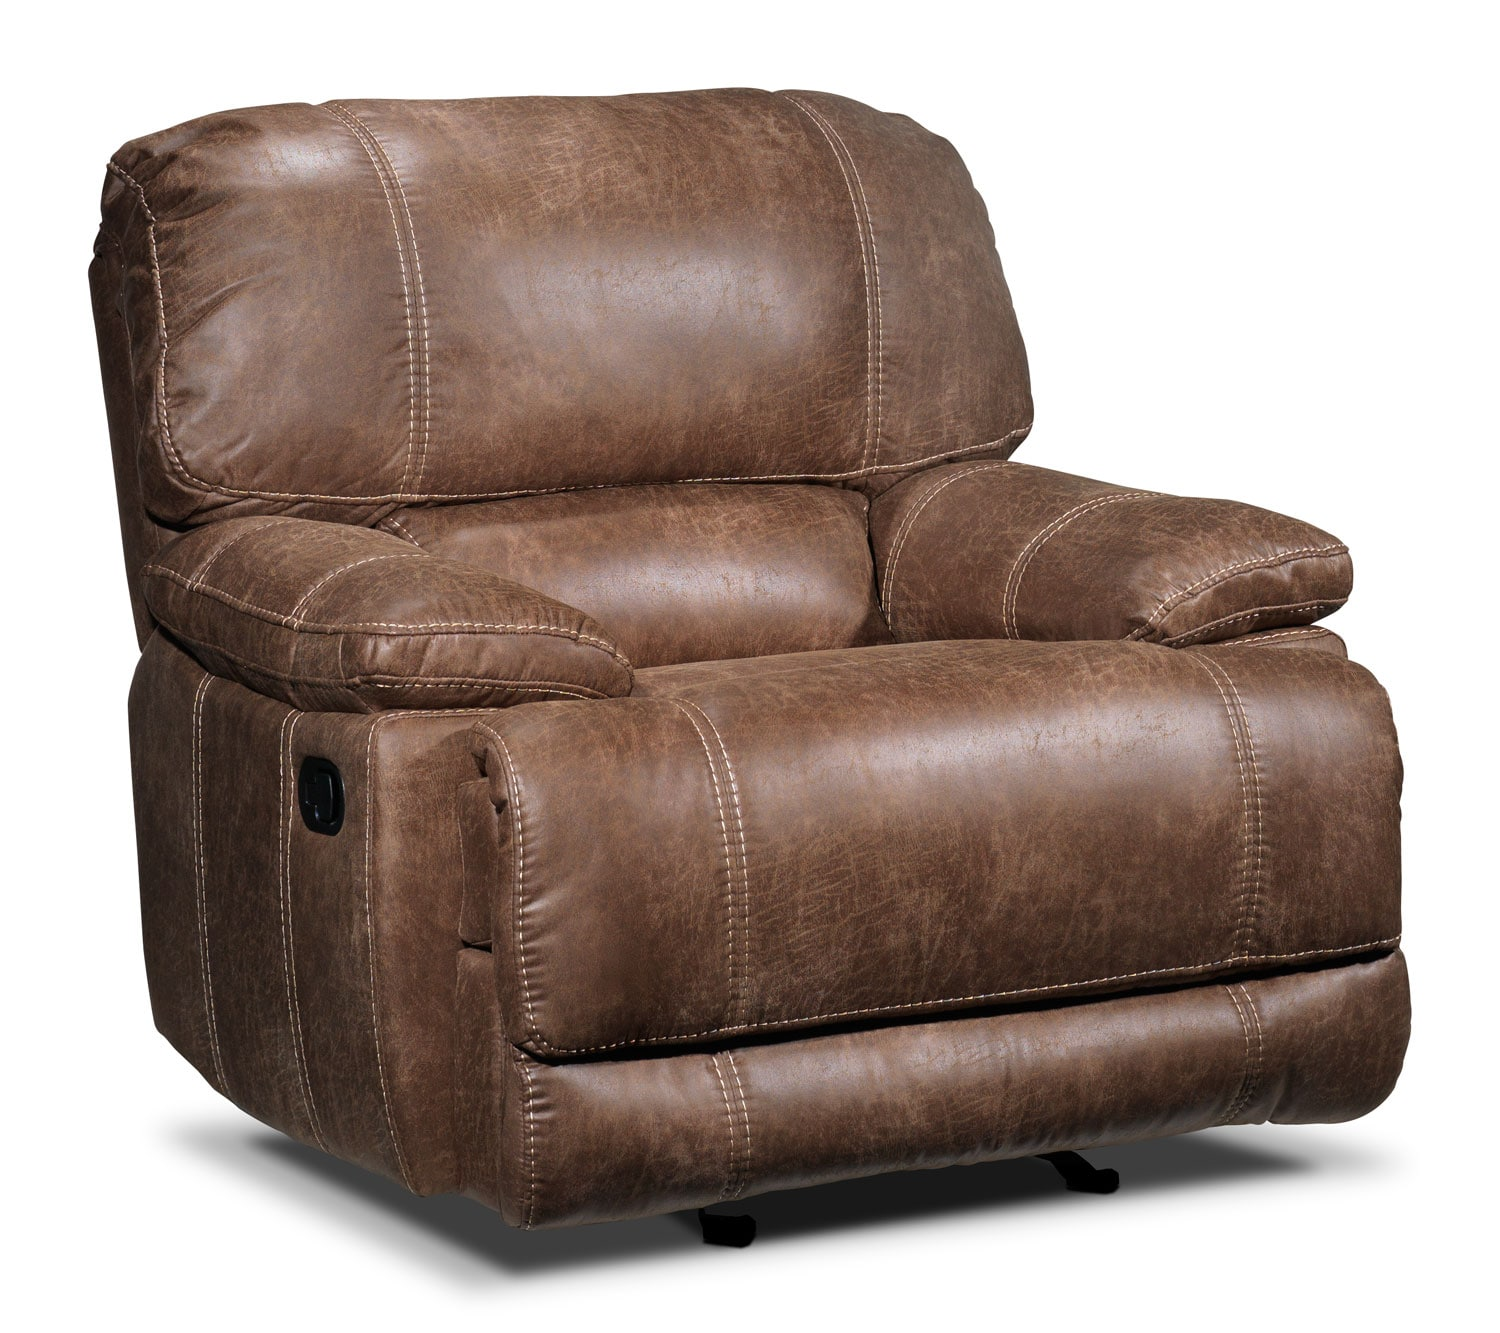 Durango Glider Recliner - Saddle Brown